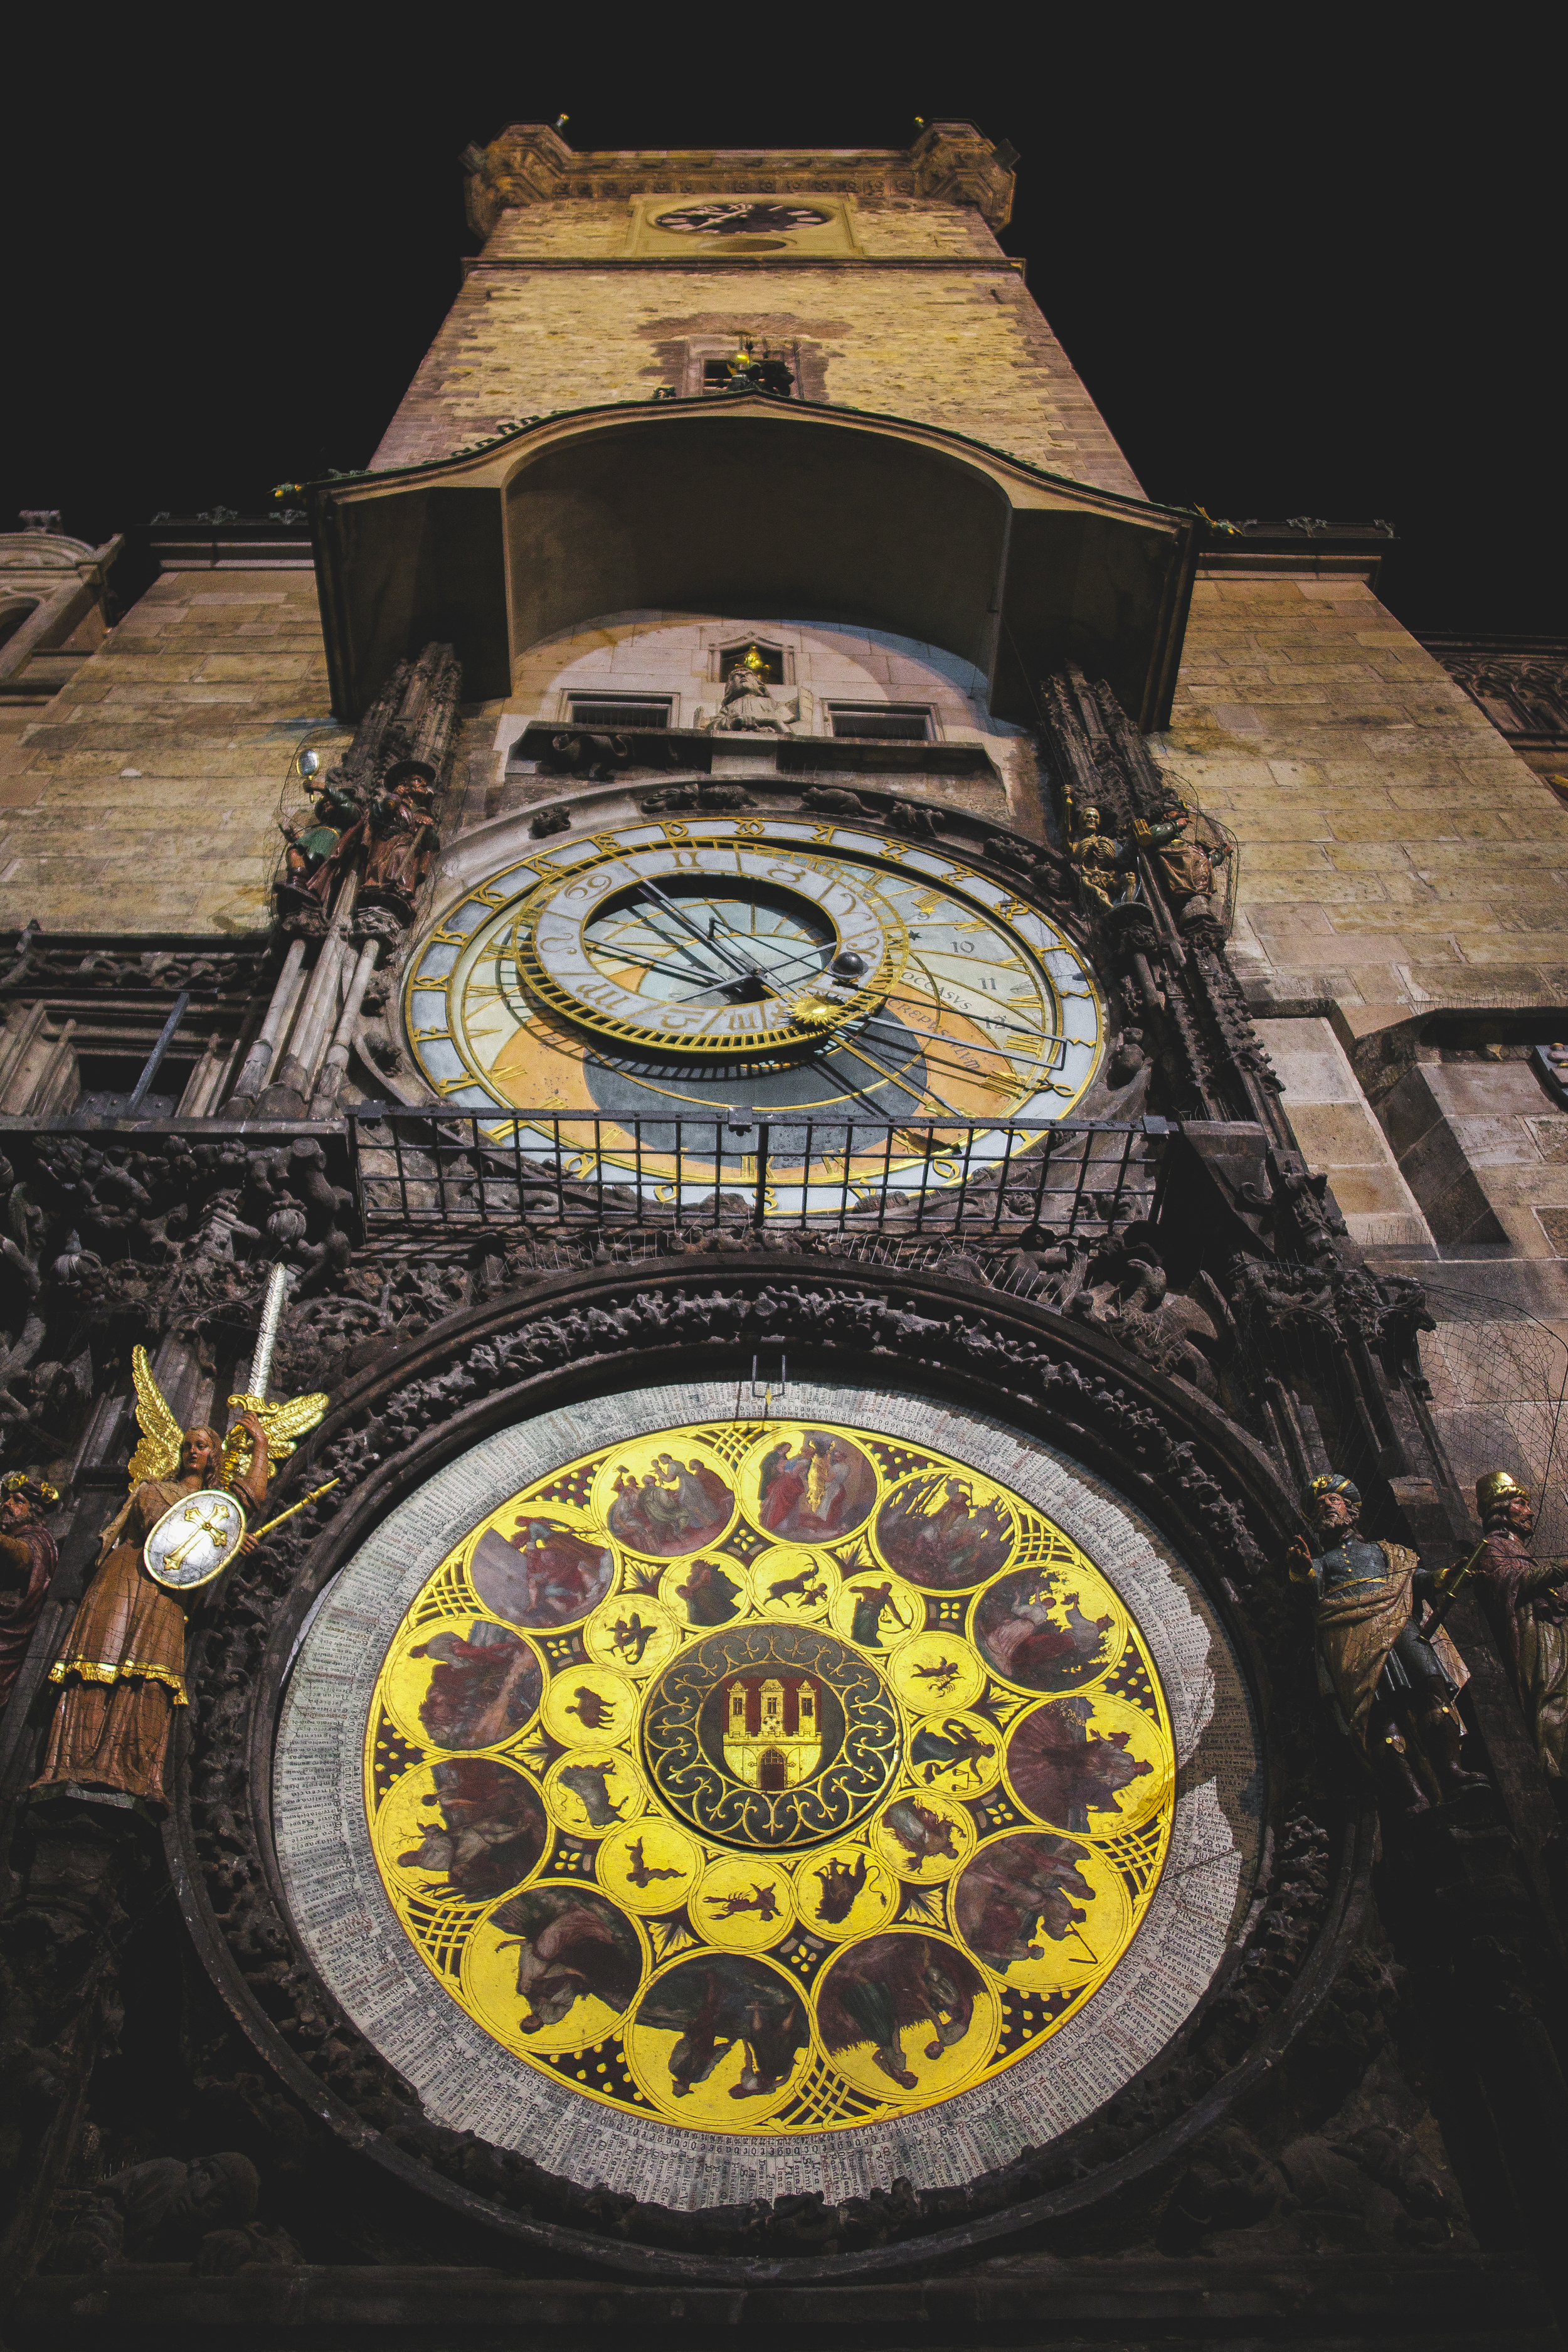 The Prague Astronomical Clock which was first installed in 1410. http://www.czechtourism.com/c/prague-astronomical-clock/